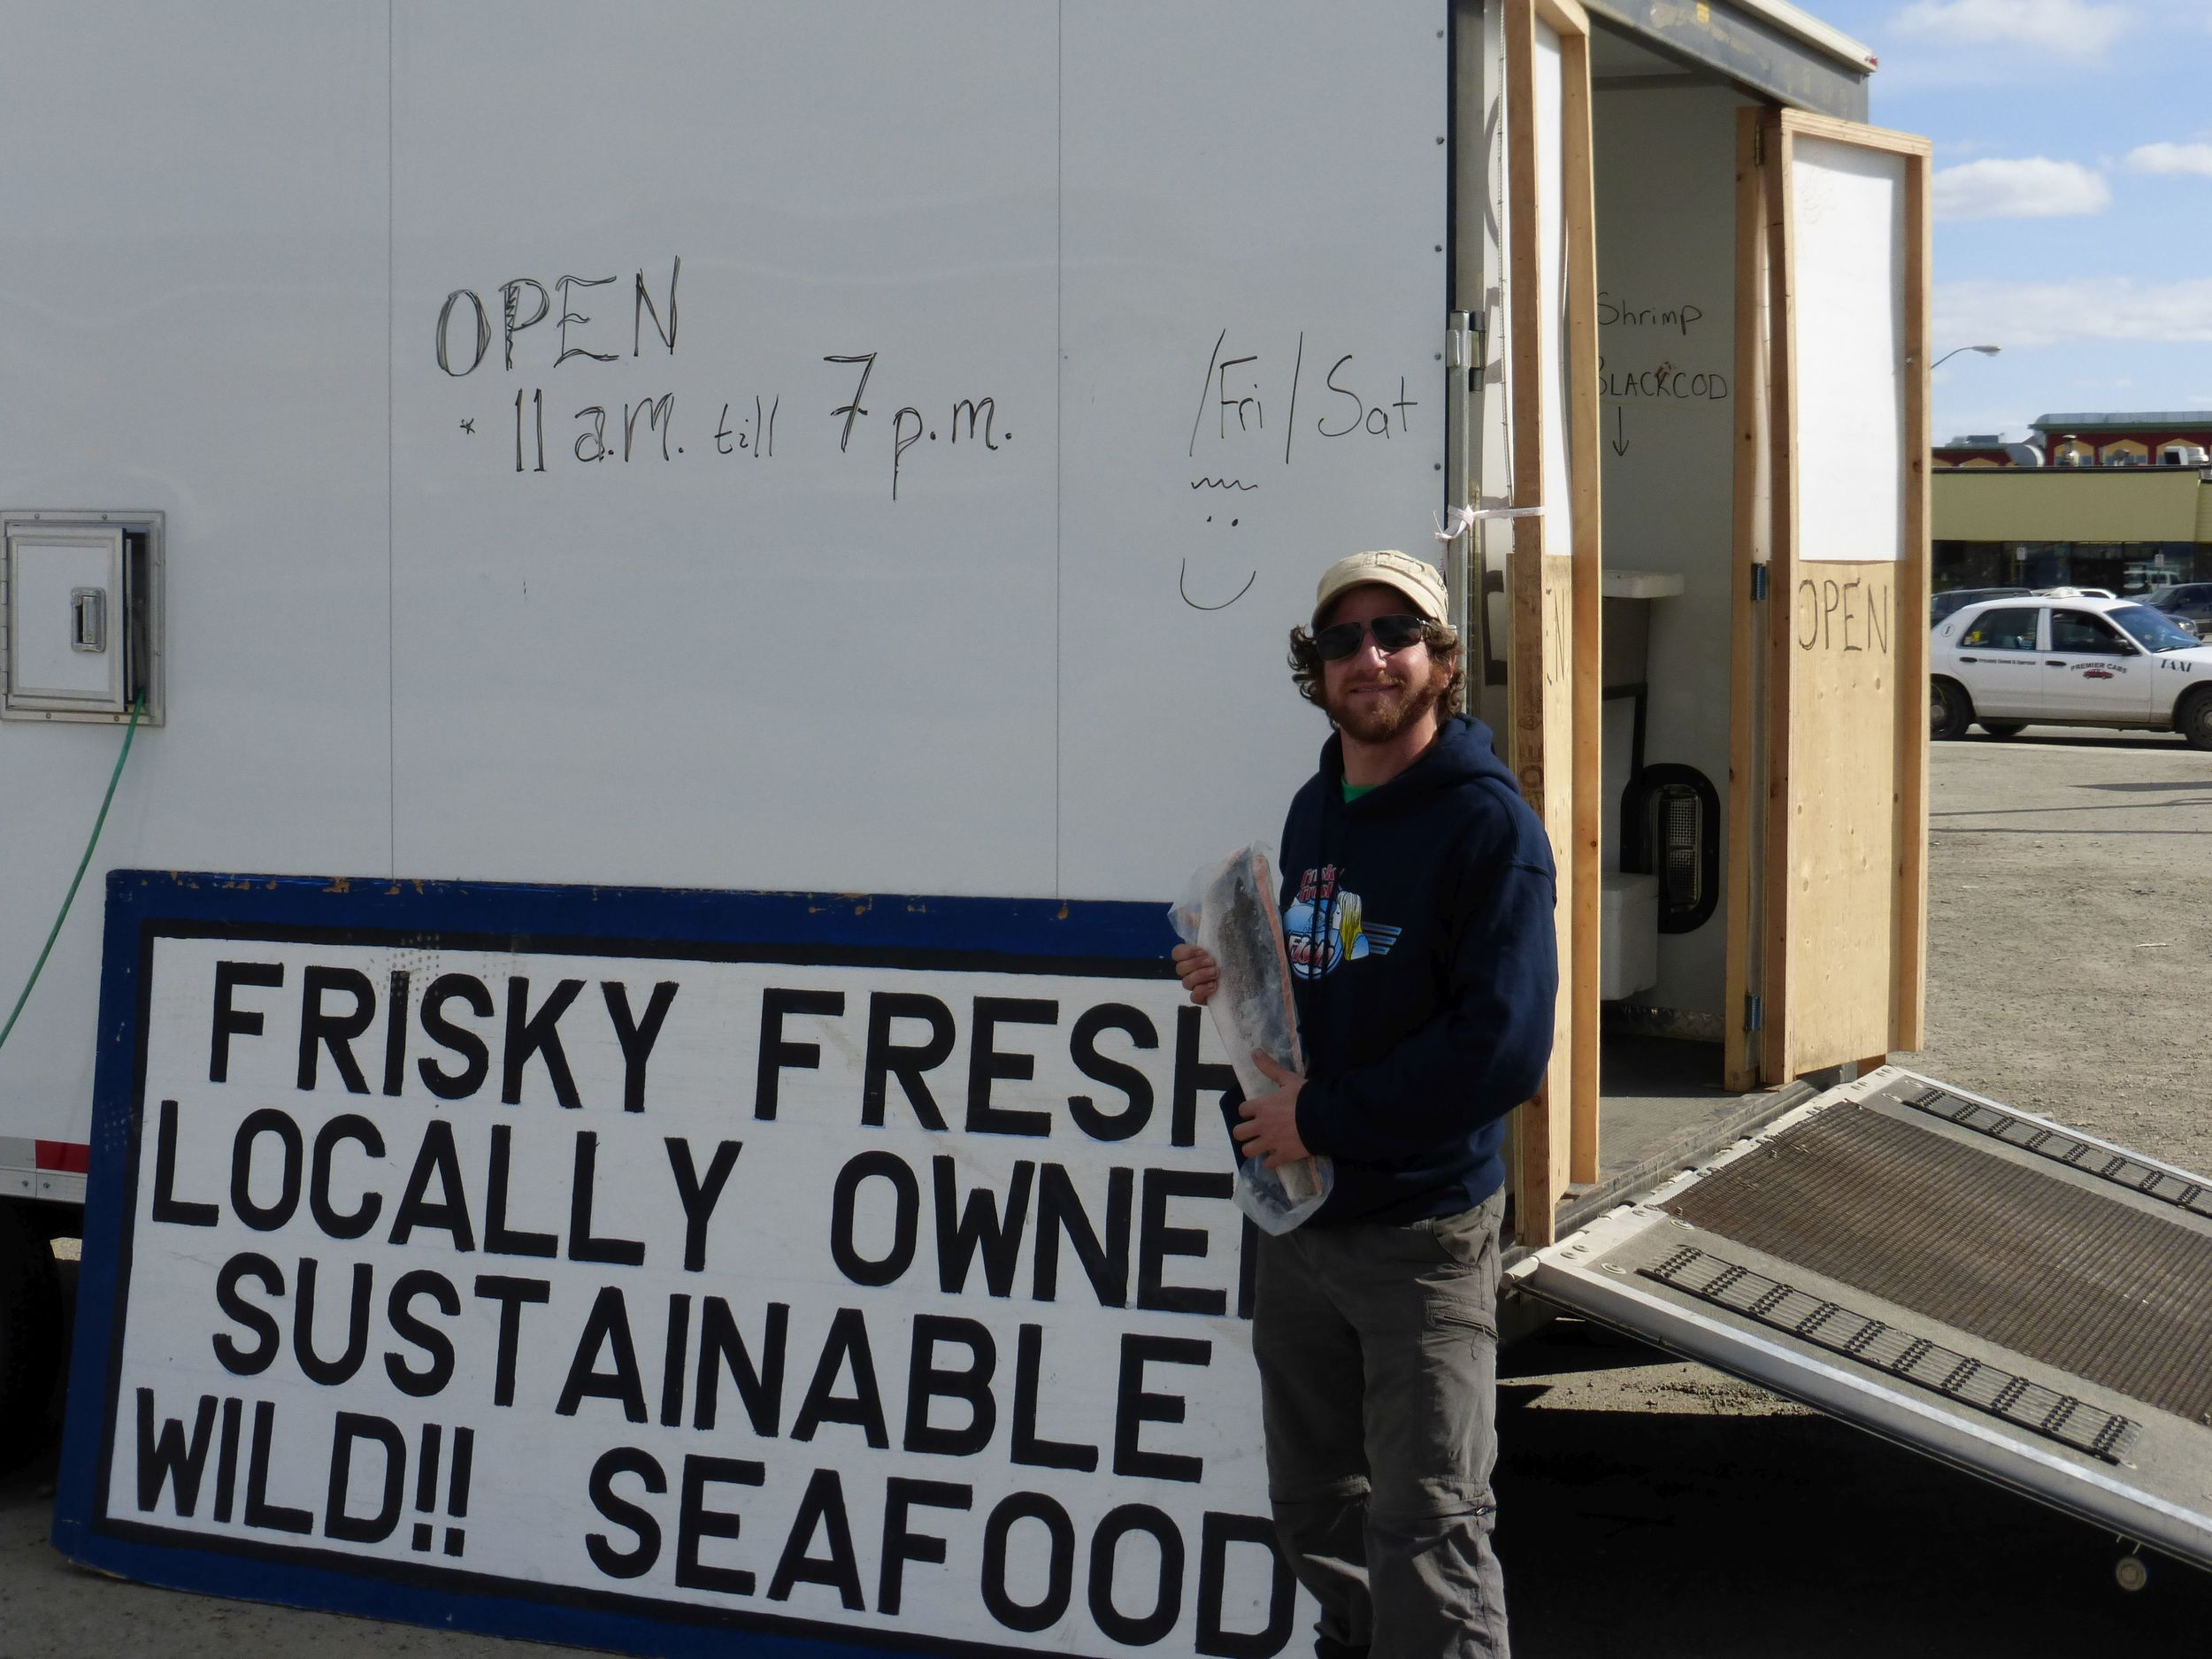 His name is Monkey.  He delivers seafood from Alaska and sells it here.  When not busy with customers he agrees to pose with a fish for people on bikes.